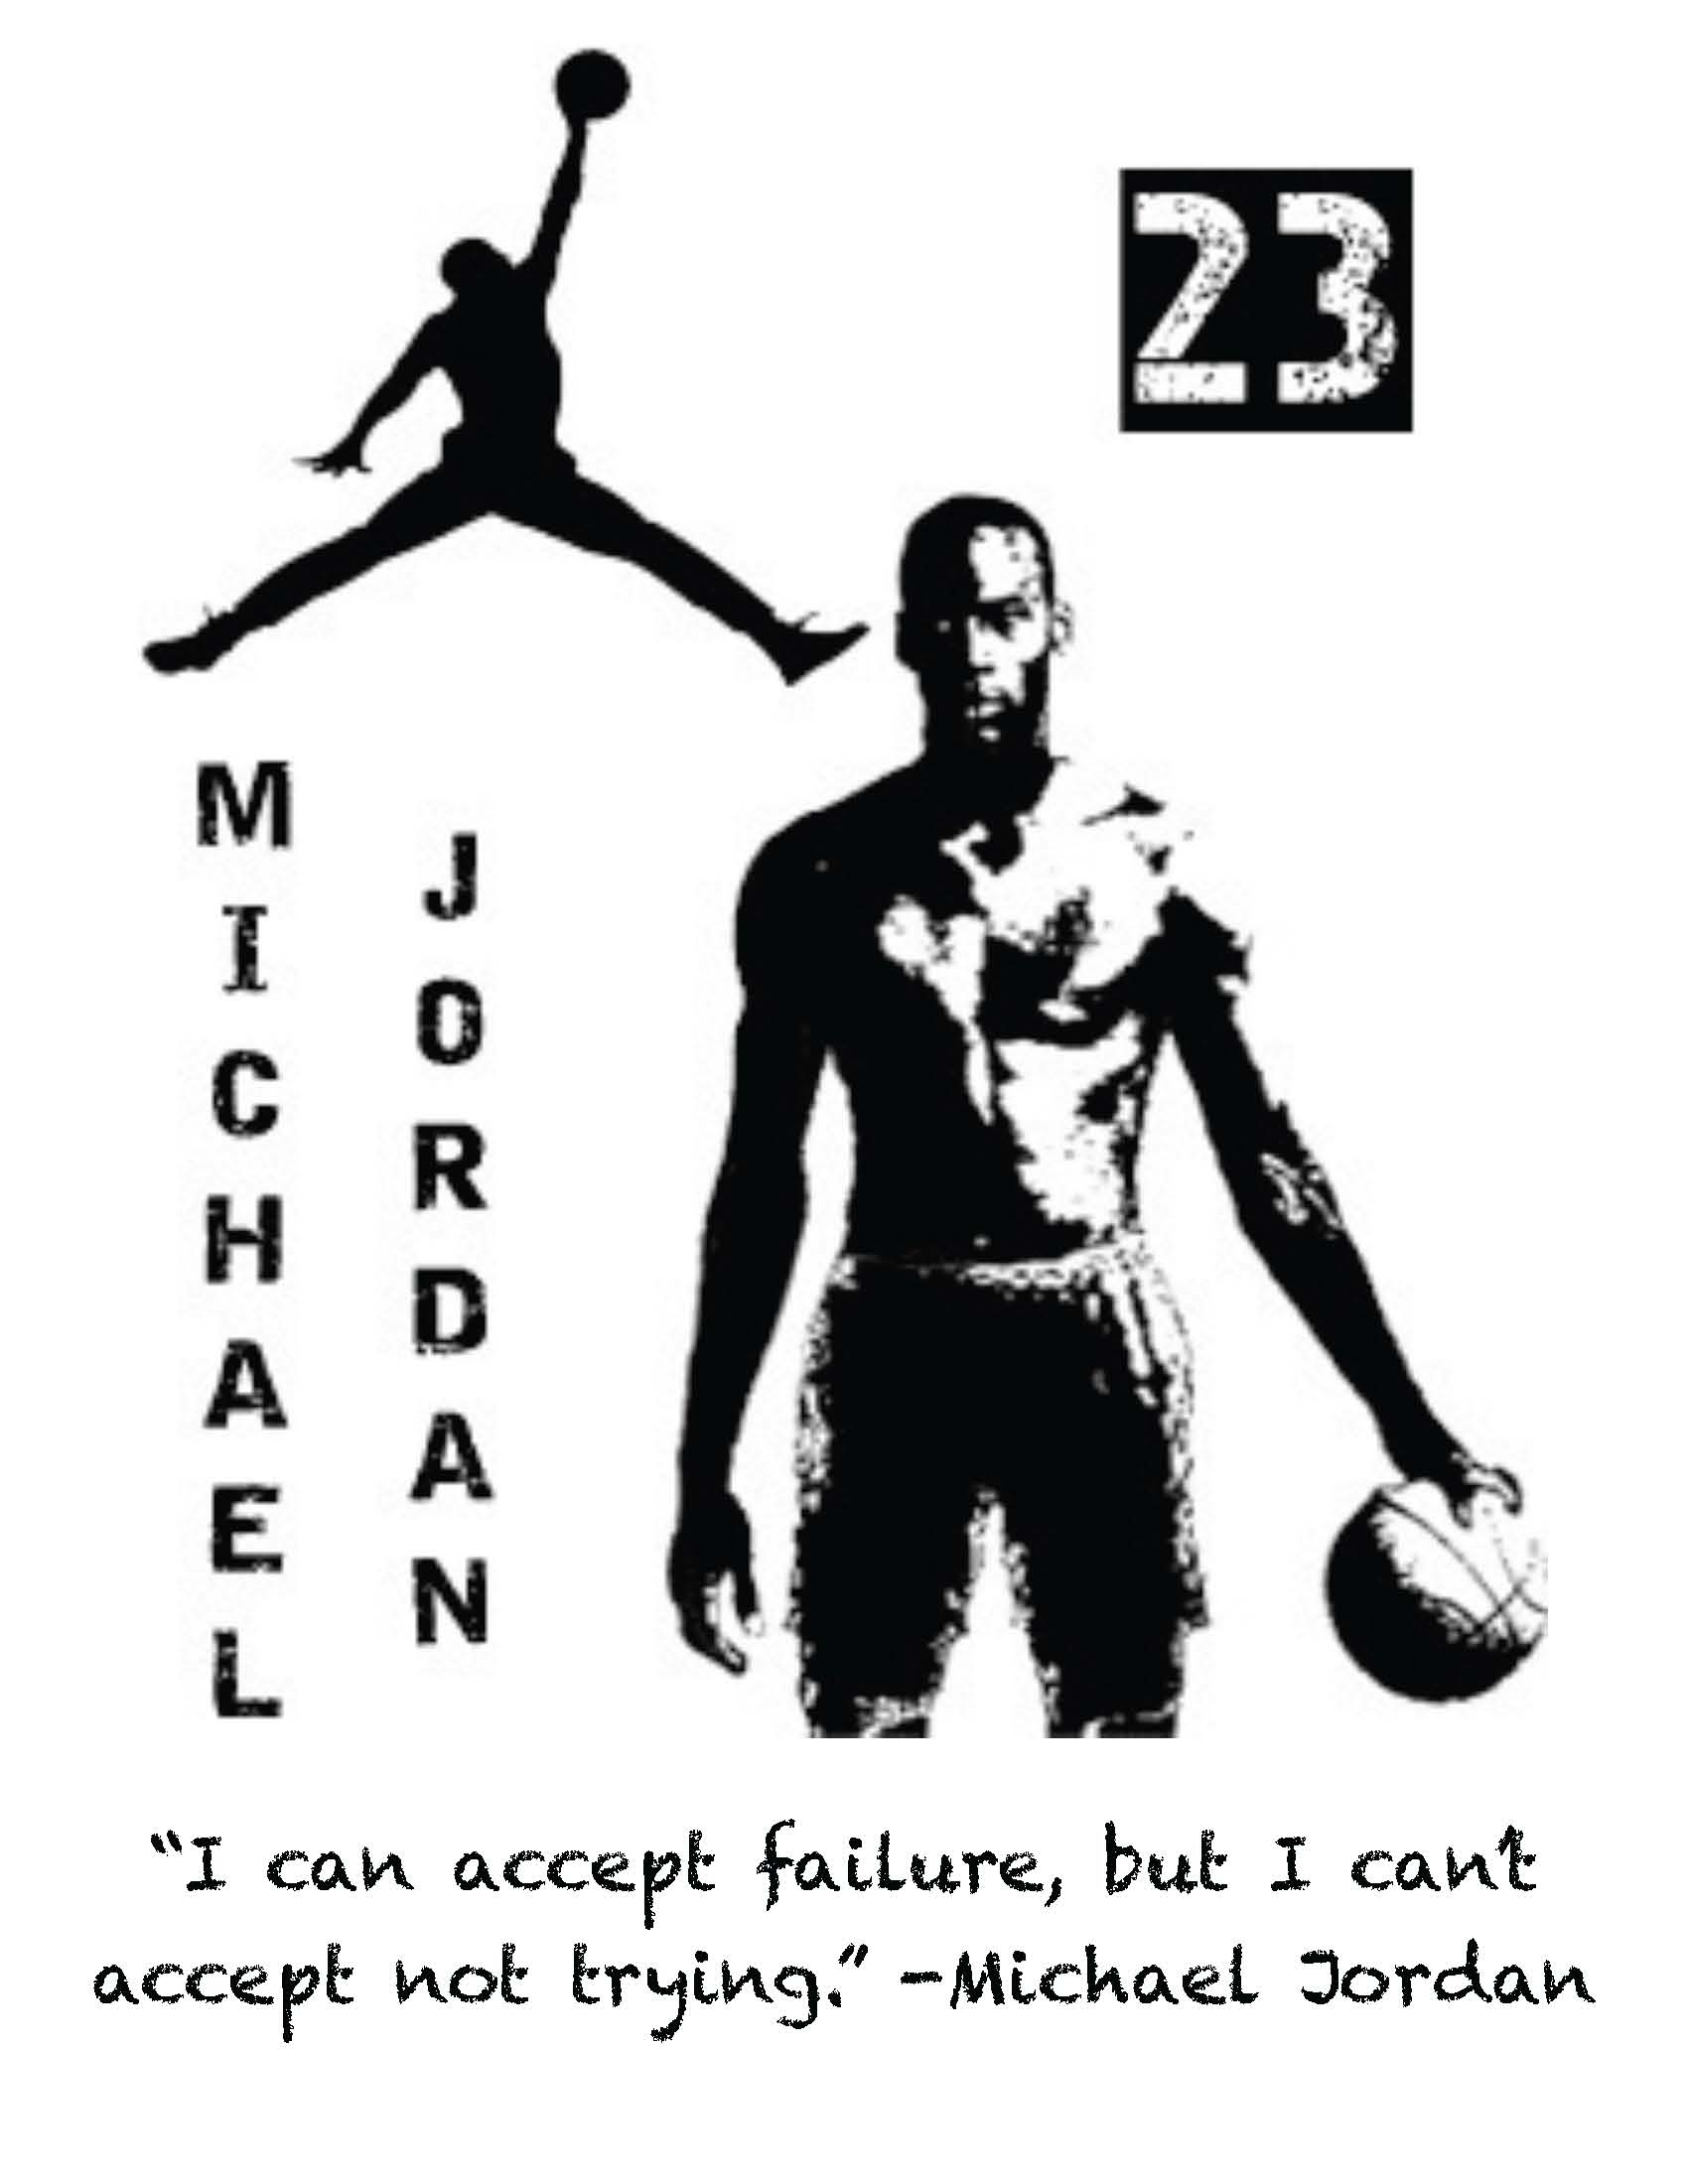 free classroom posters, free posters for school, writing prompt posters, writing prompts, inspirational quotes, inspirational posters, washington activities, washington lessons, washington writing prompts, bulletin board ideas, you can lead a horse to water poster, michael jordan posters, I can accept failure poster,